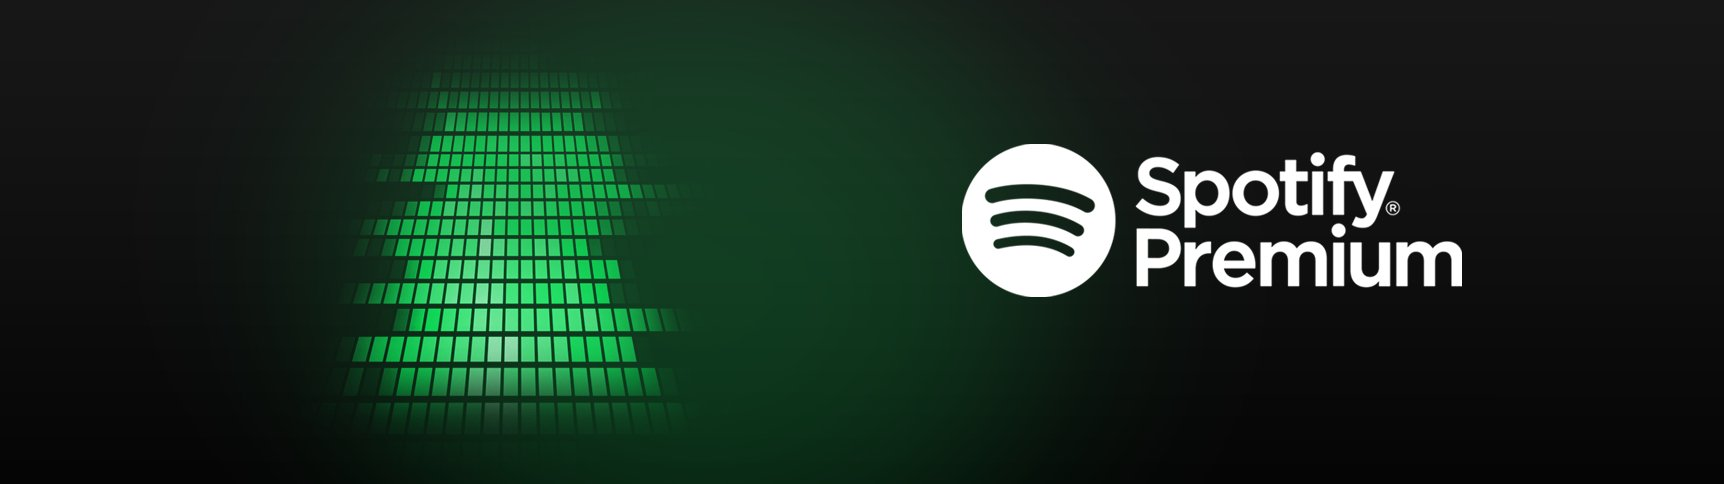 Xbox Games Pass Ultimate and Spotify Premium